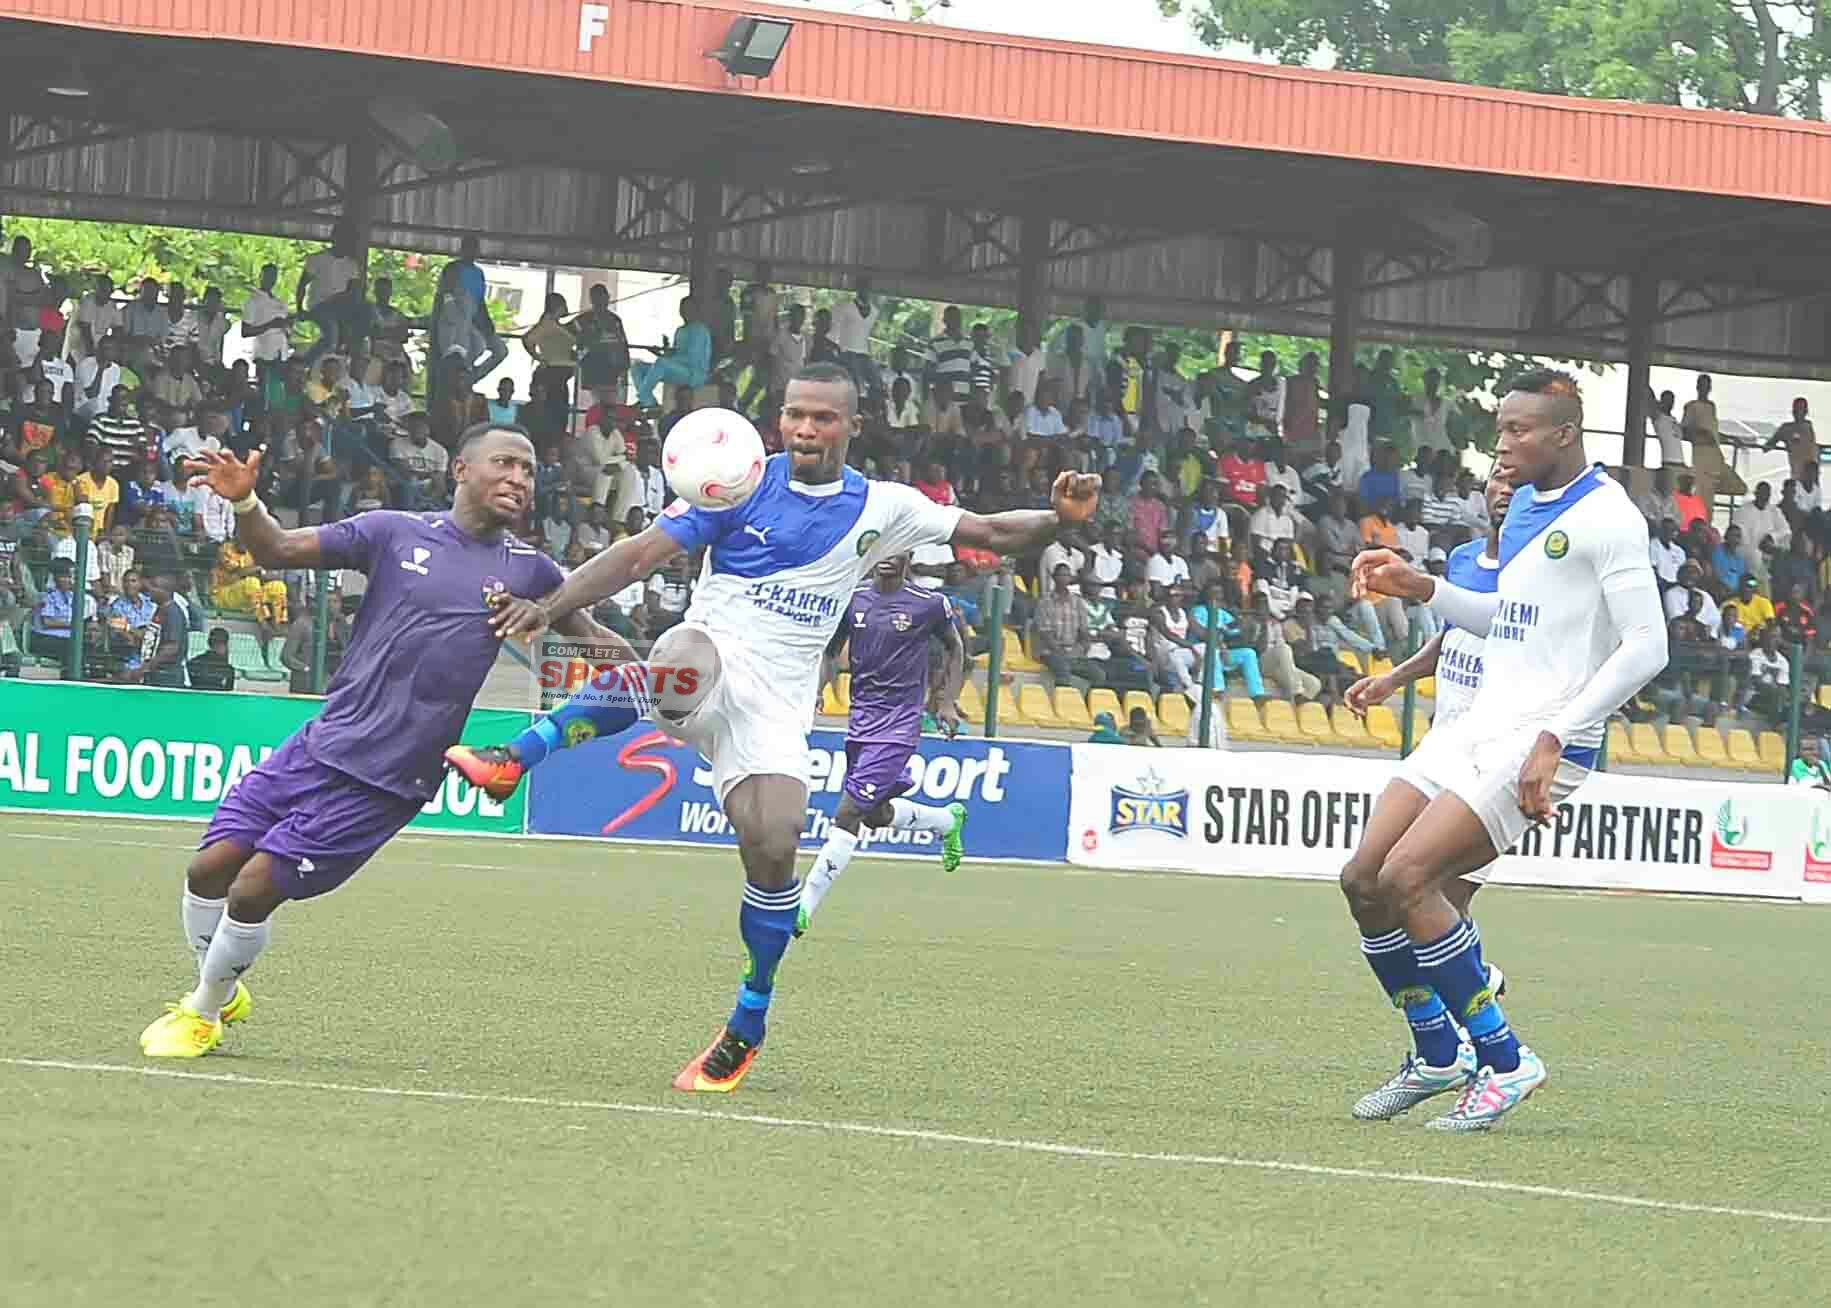 Akwa United Host Ambitious MFM At Akpabio Stadium Fortress; Plateau Eager To Go Top With Win Over Katsina